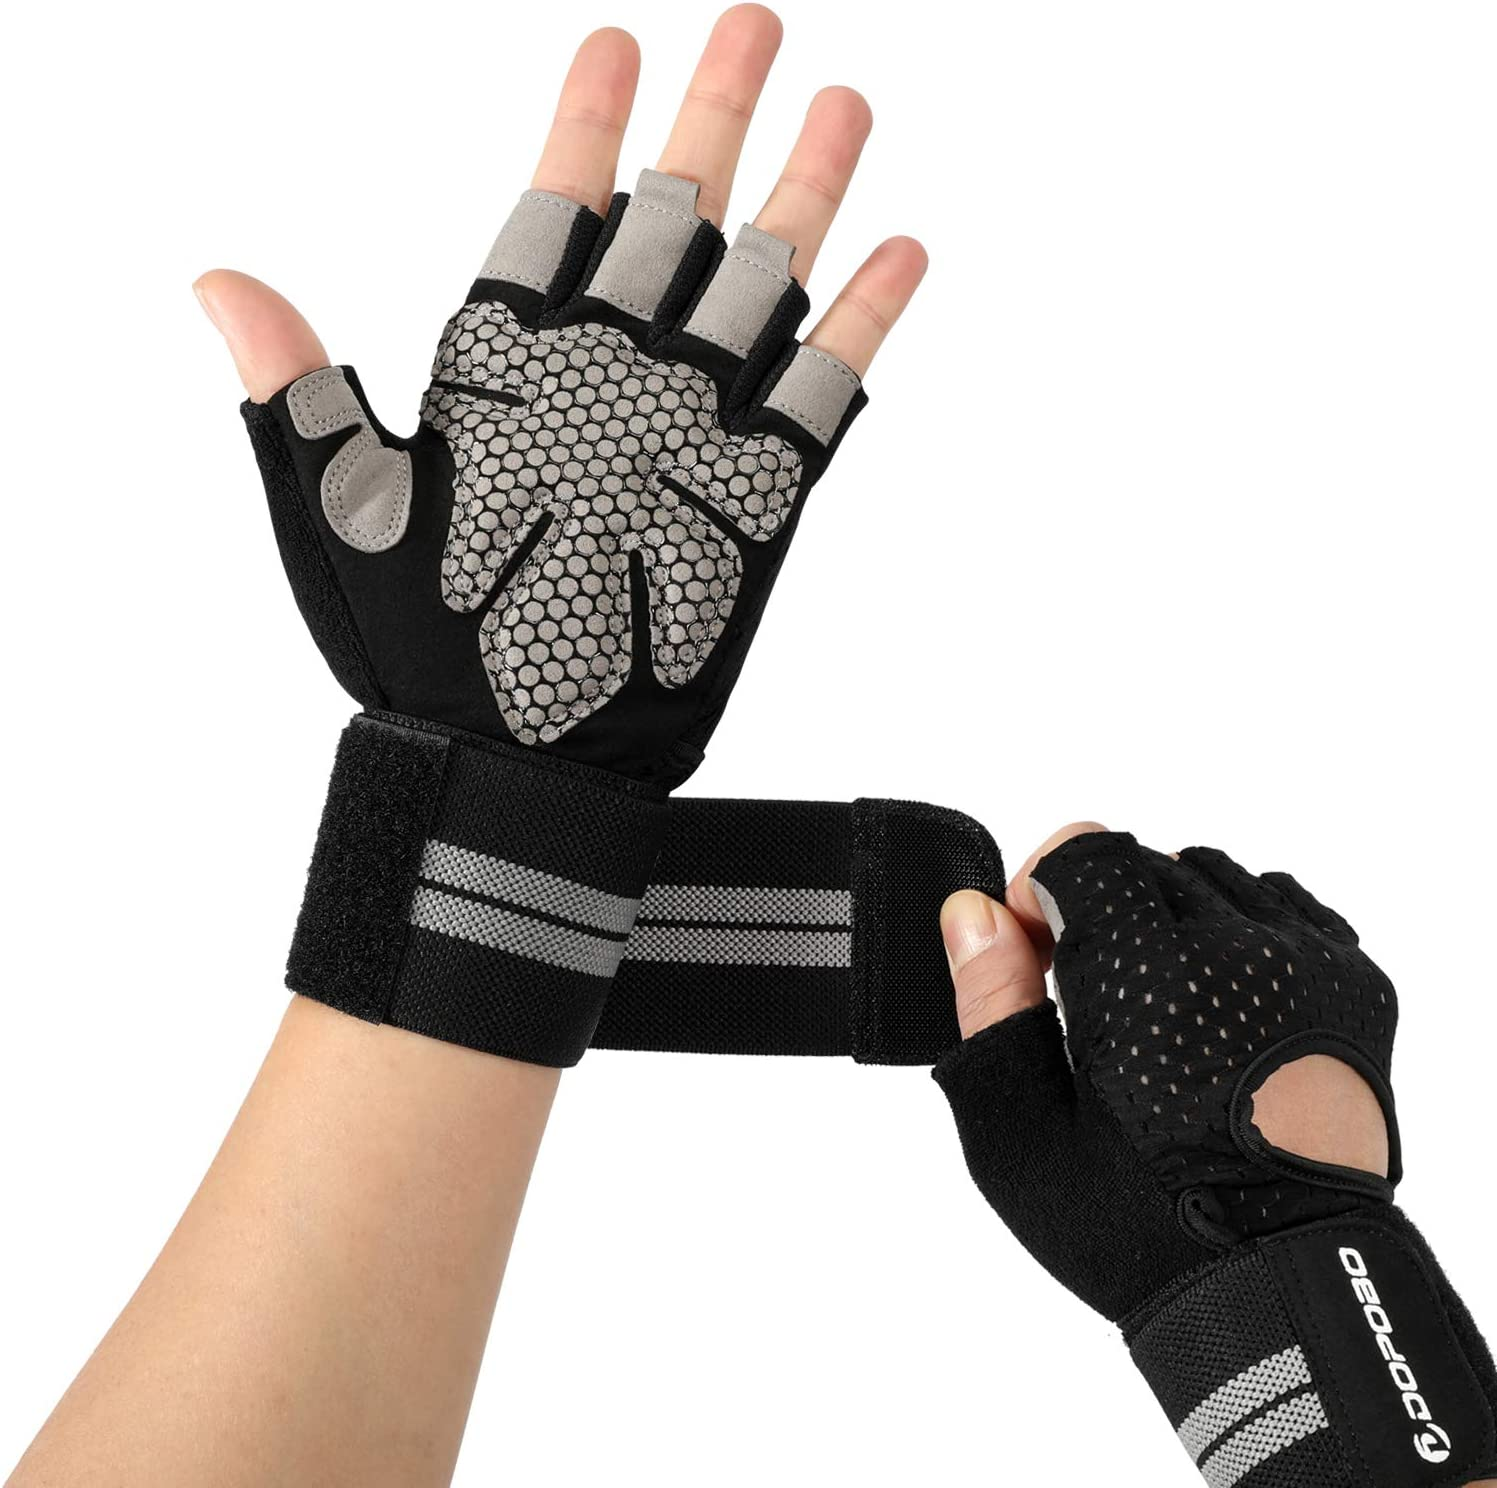 Fitness Exercise Workout Gloves Dumbbell Crossfit Powerlifting WODs Cross Training Climbing Rowing Weight Lifting Gloves : Men /& Women Gym Glove Cycling Glove for Weightlifting Pull Up